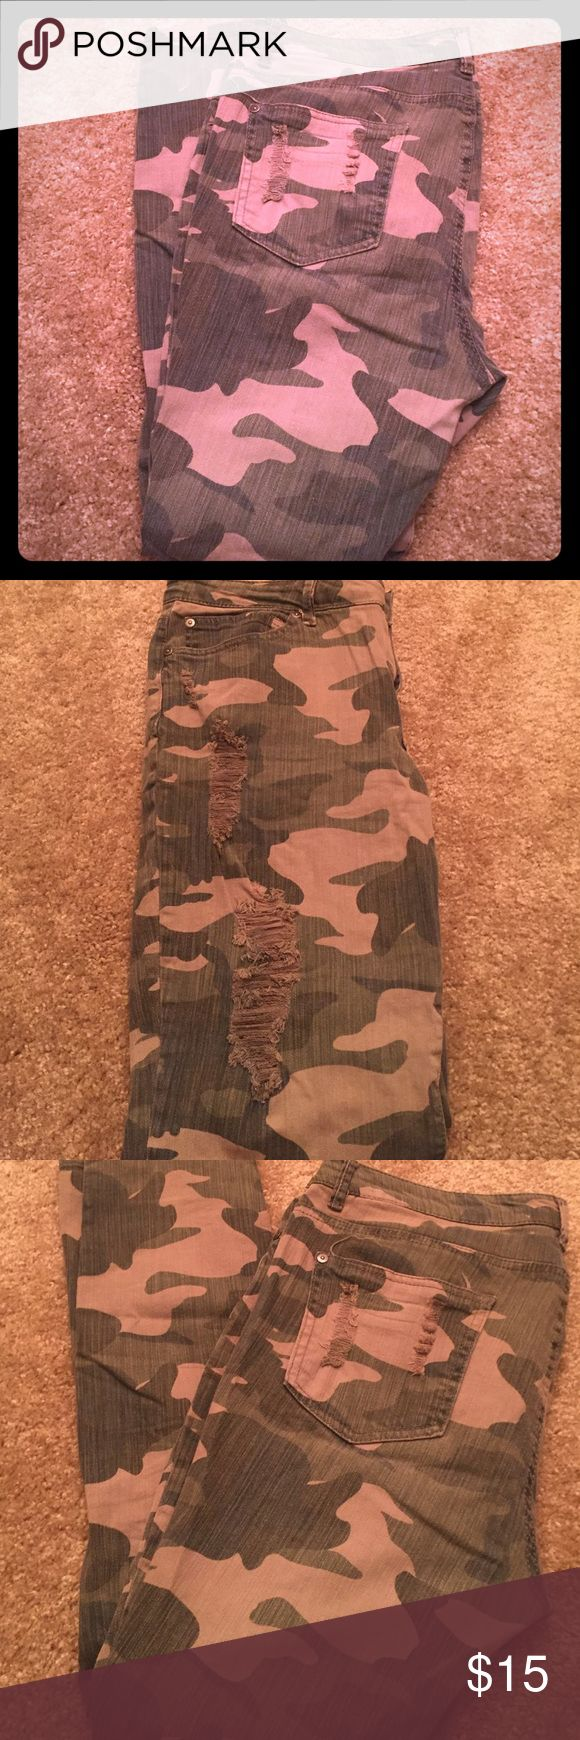 Forever 21 size 31 camo skinnies Forever 21 size 31 camo skinny pants. They have a distressed look, including the fabric, which is made to look worn. There is also distressing on the upper thighs and back pockets. Only worn a handful of times. In great condition. Forever 21 Pants Skinny